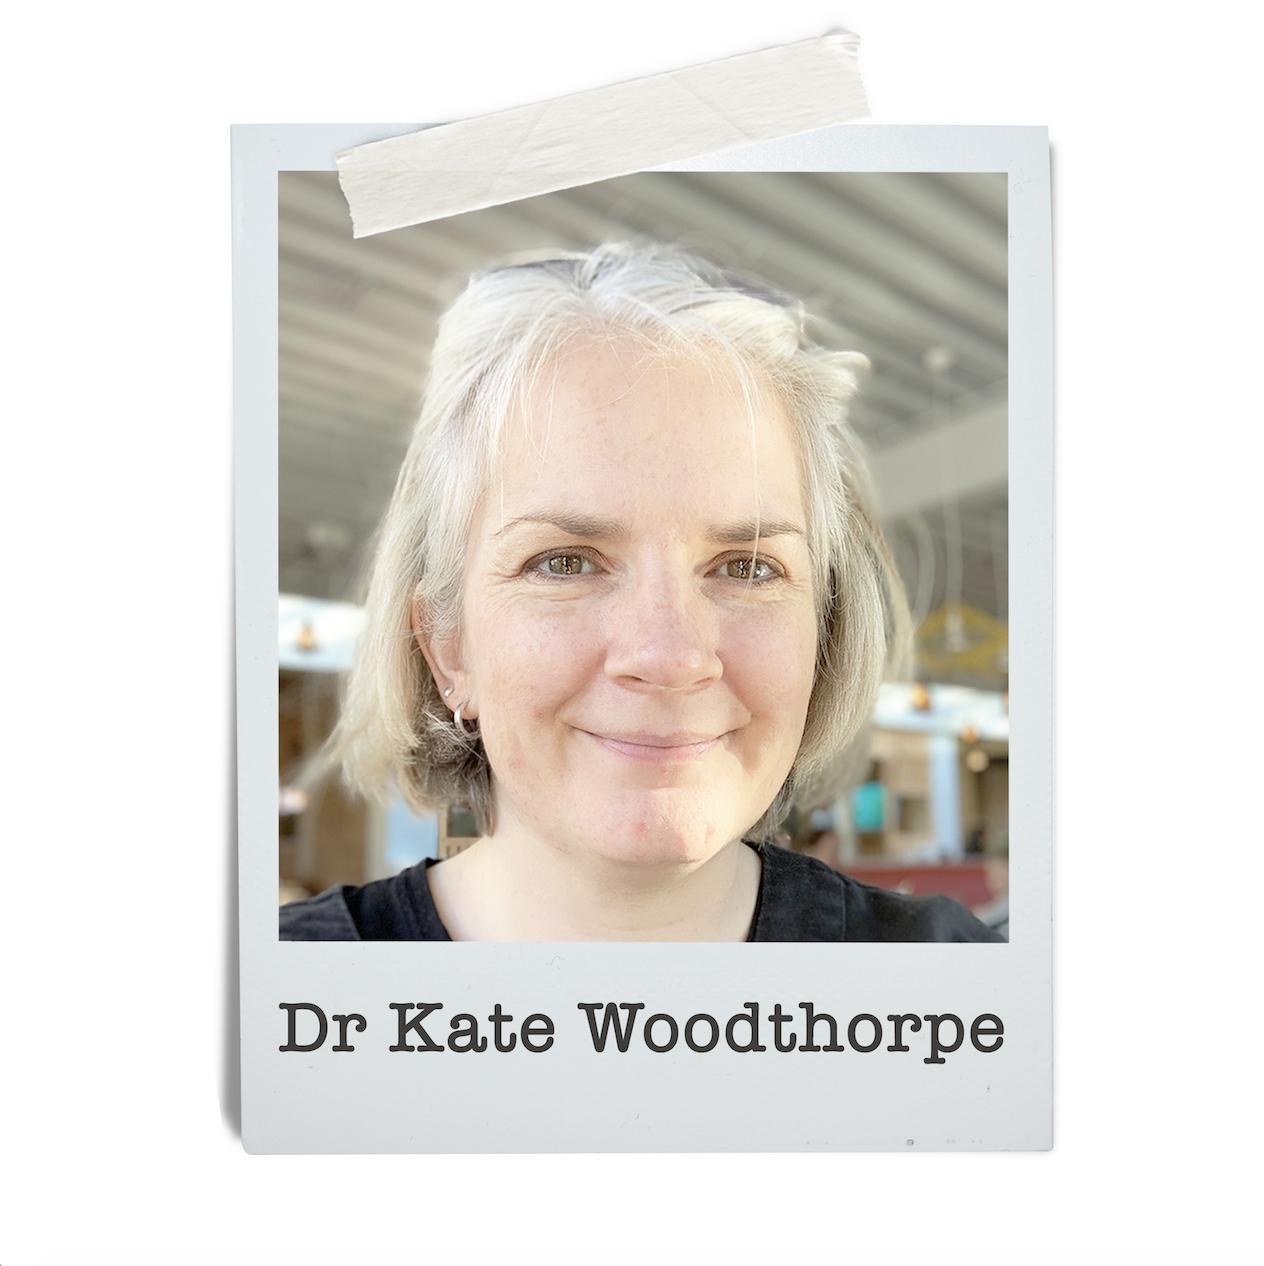 Dr Kate Woodthorpe